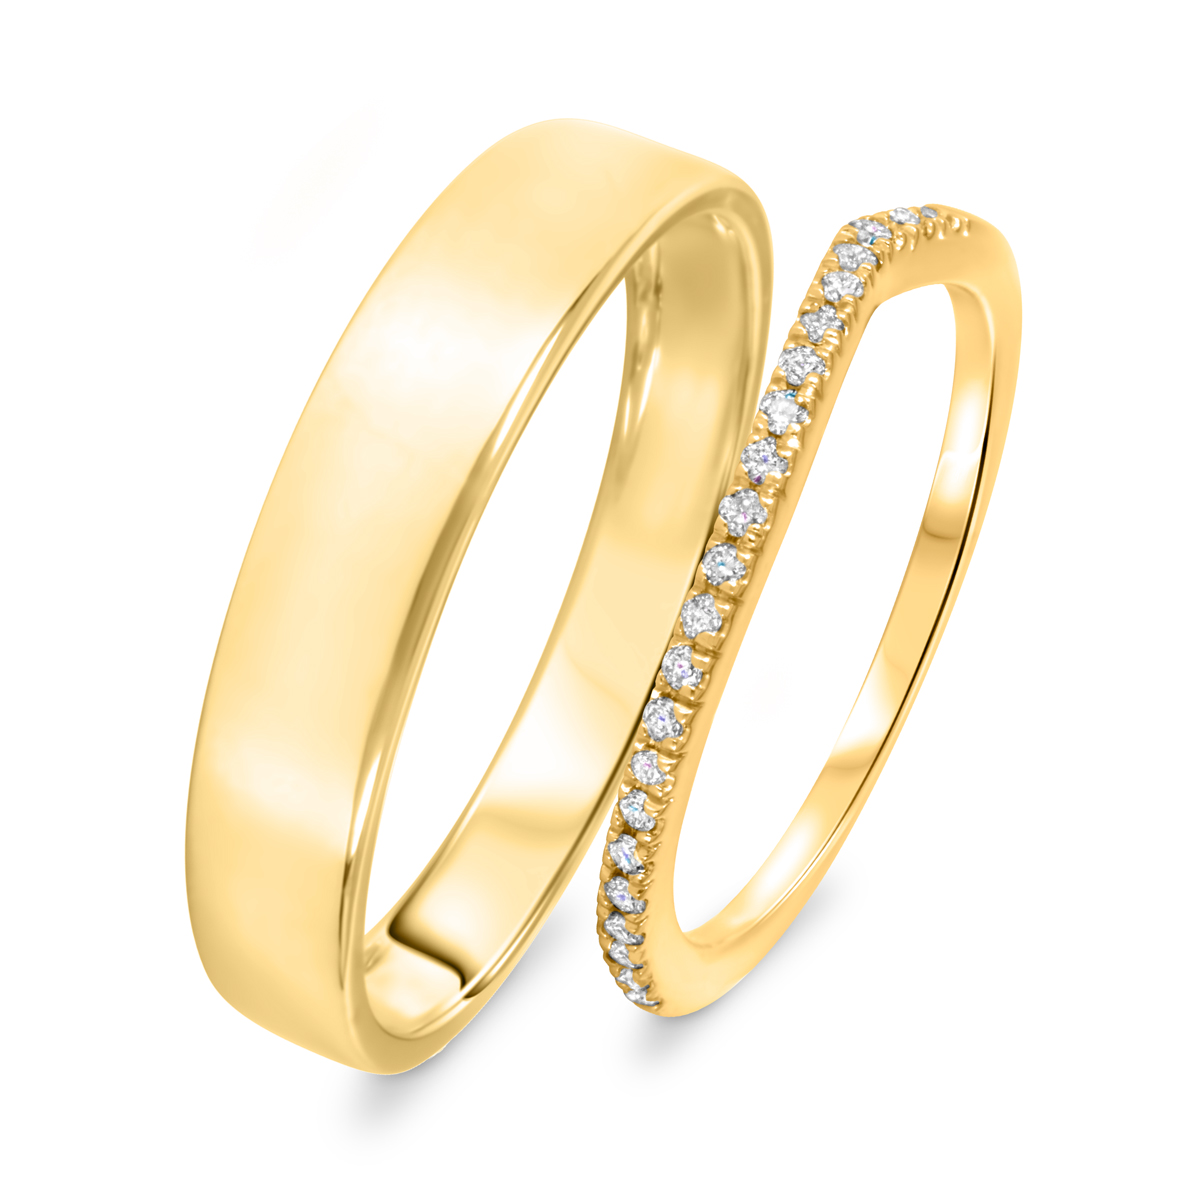 1/10 Carat T.W. Round Cut Diamond His And Hers Wedding Band Set 10K Yellow Gold-